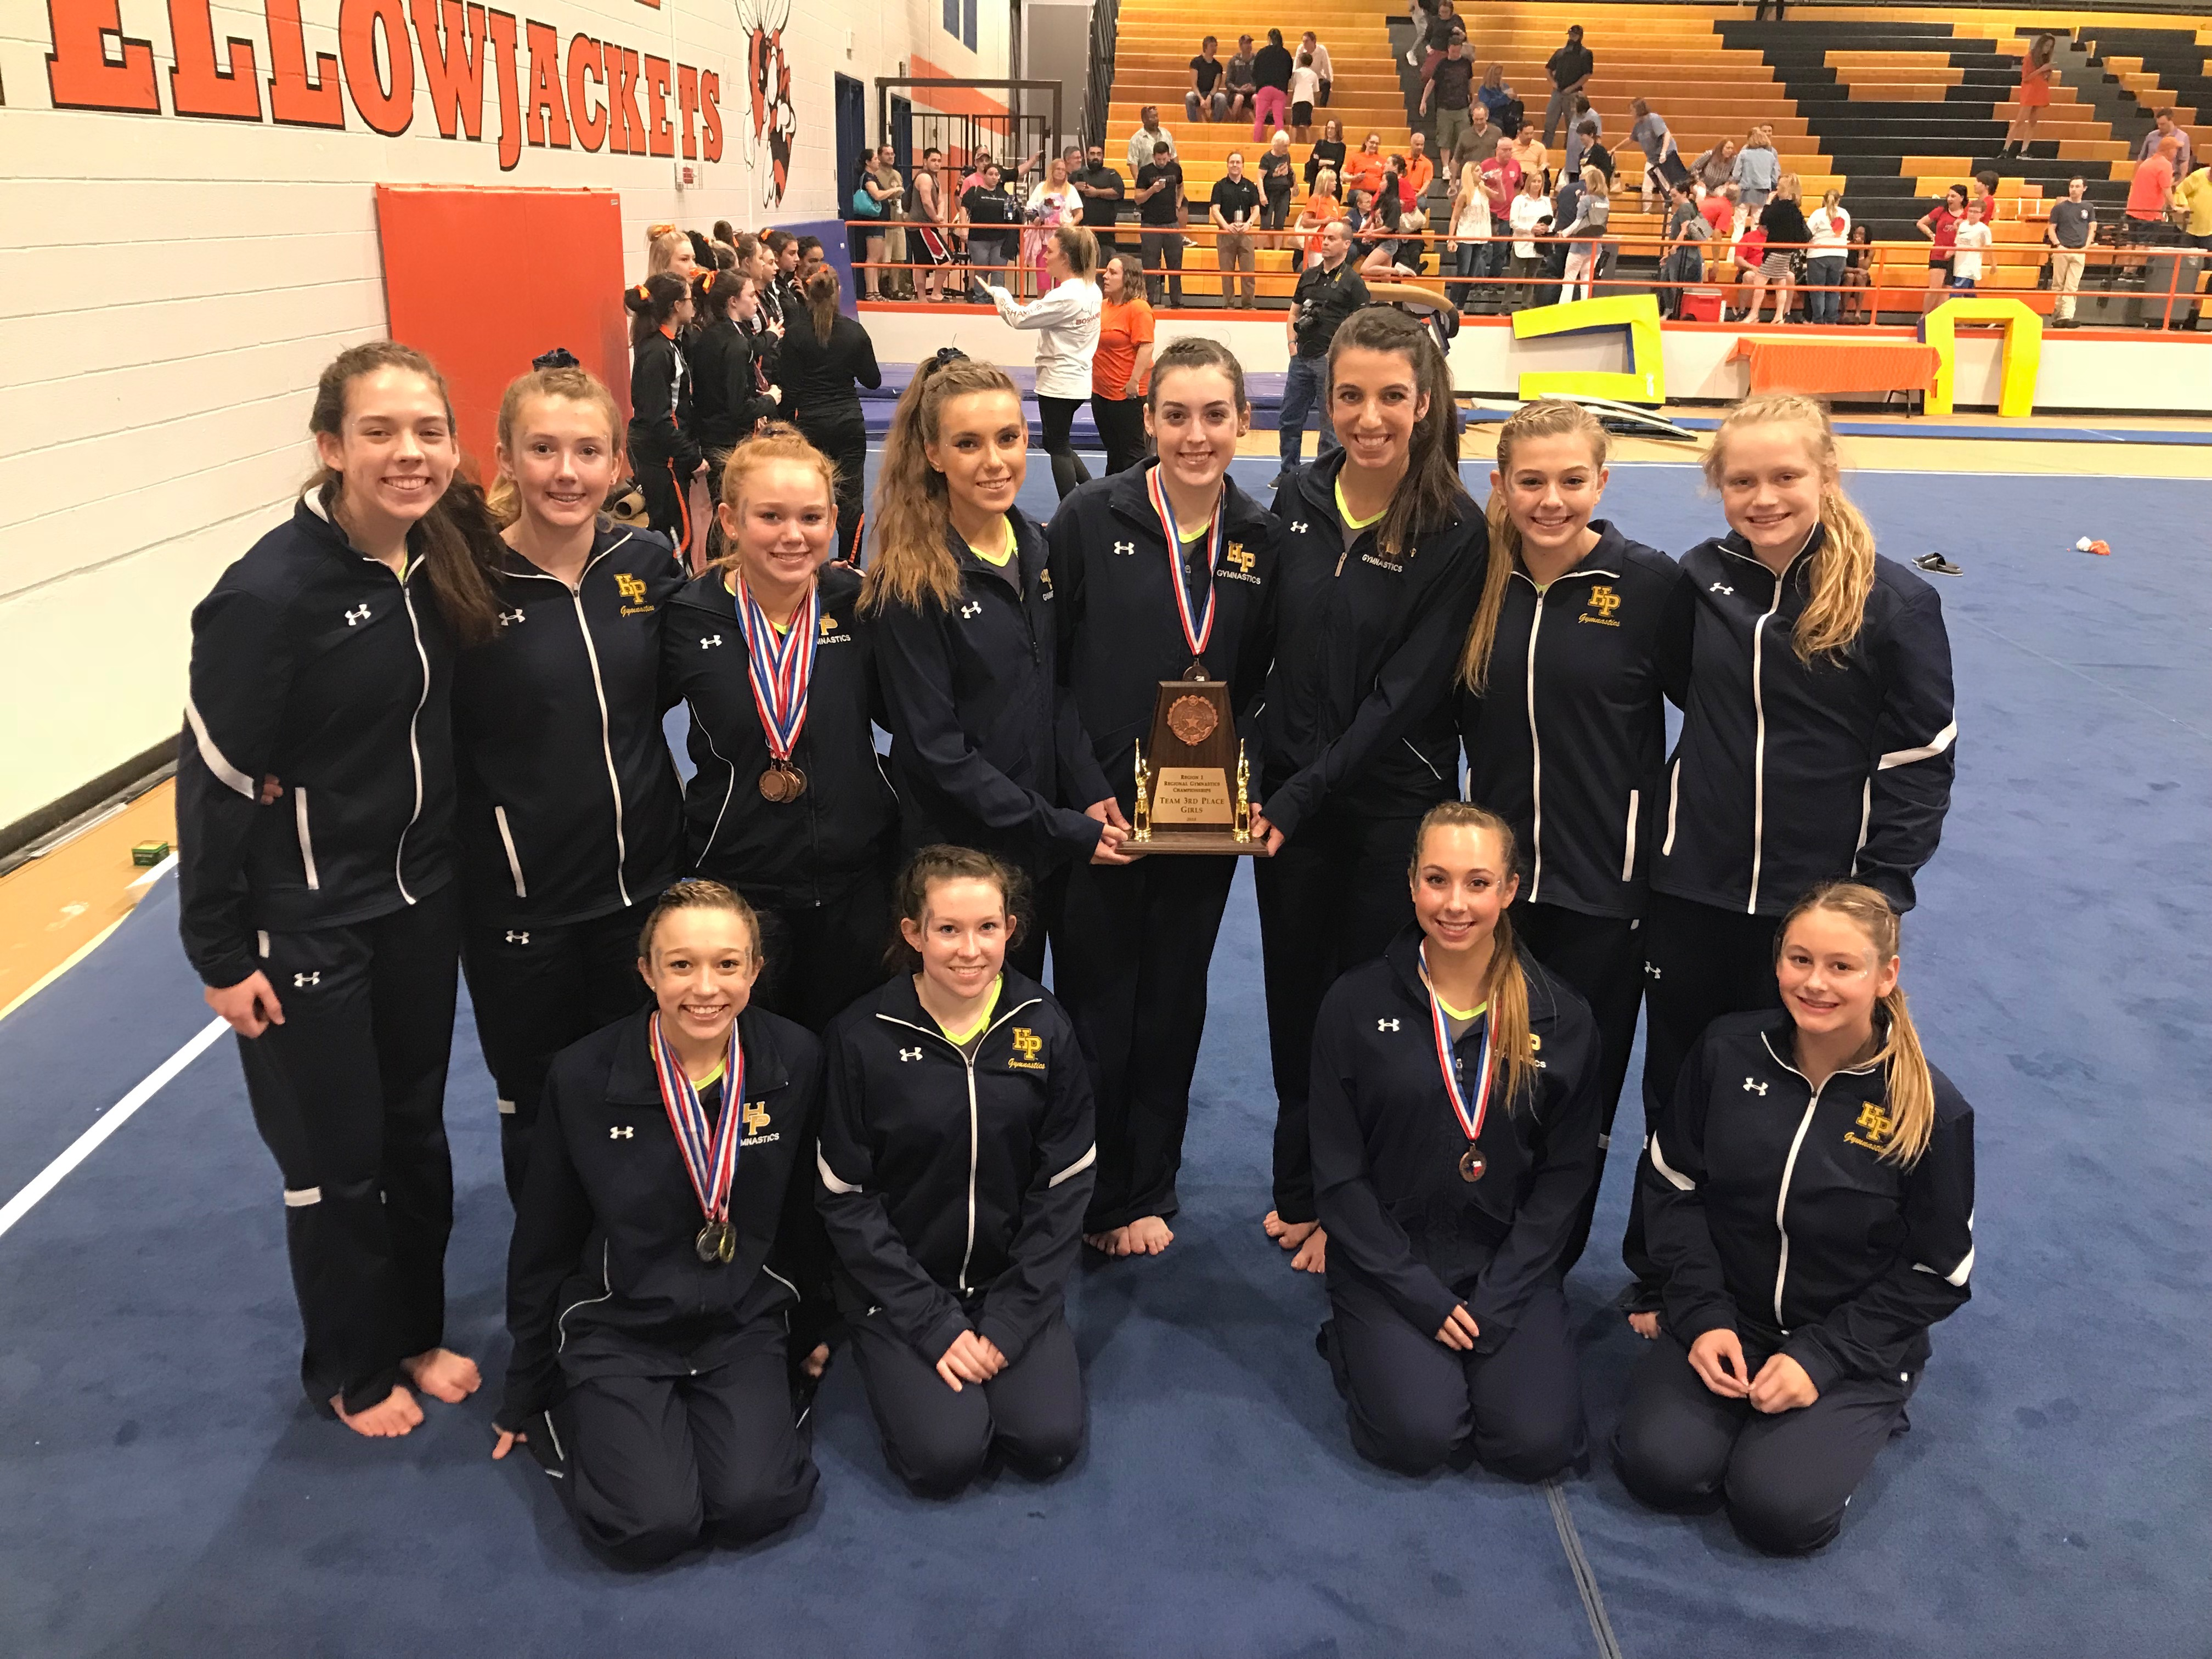 Lady Scots Gymnastics Place 3rd at Regionals and Advance to State